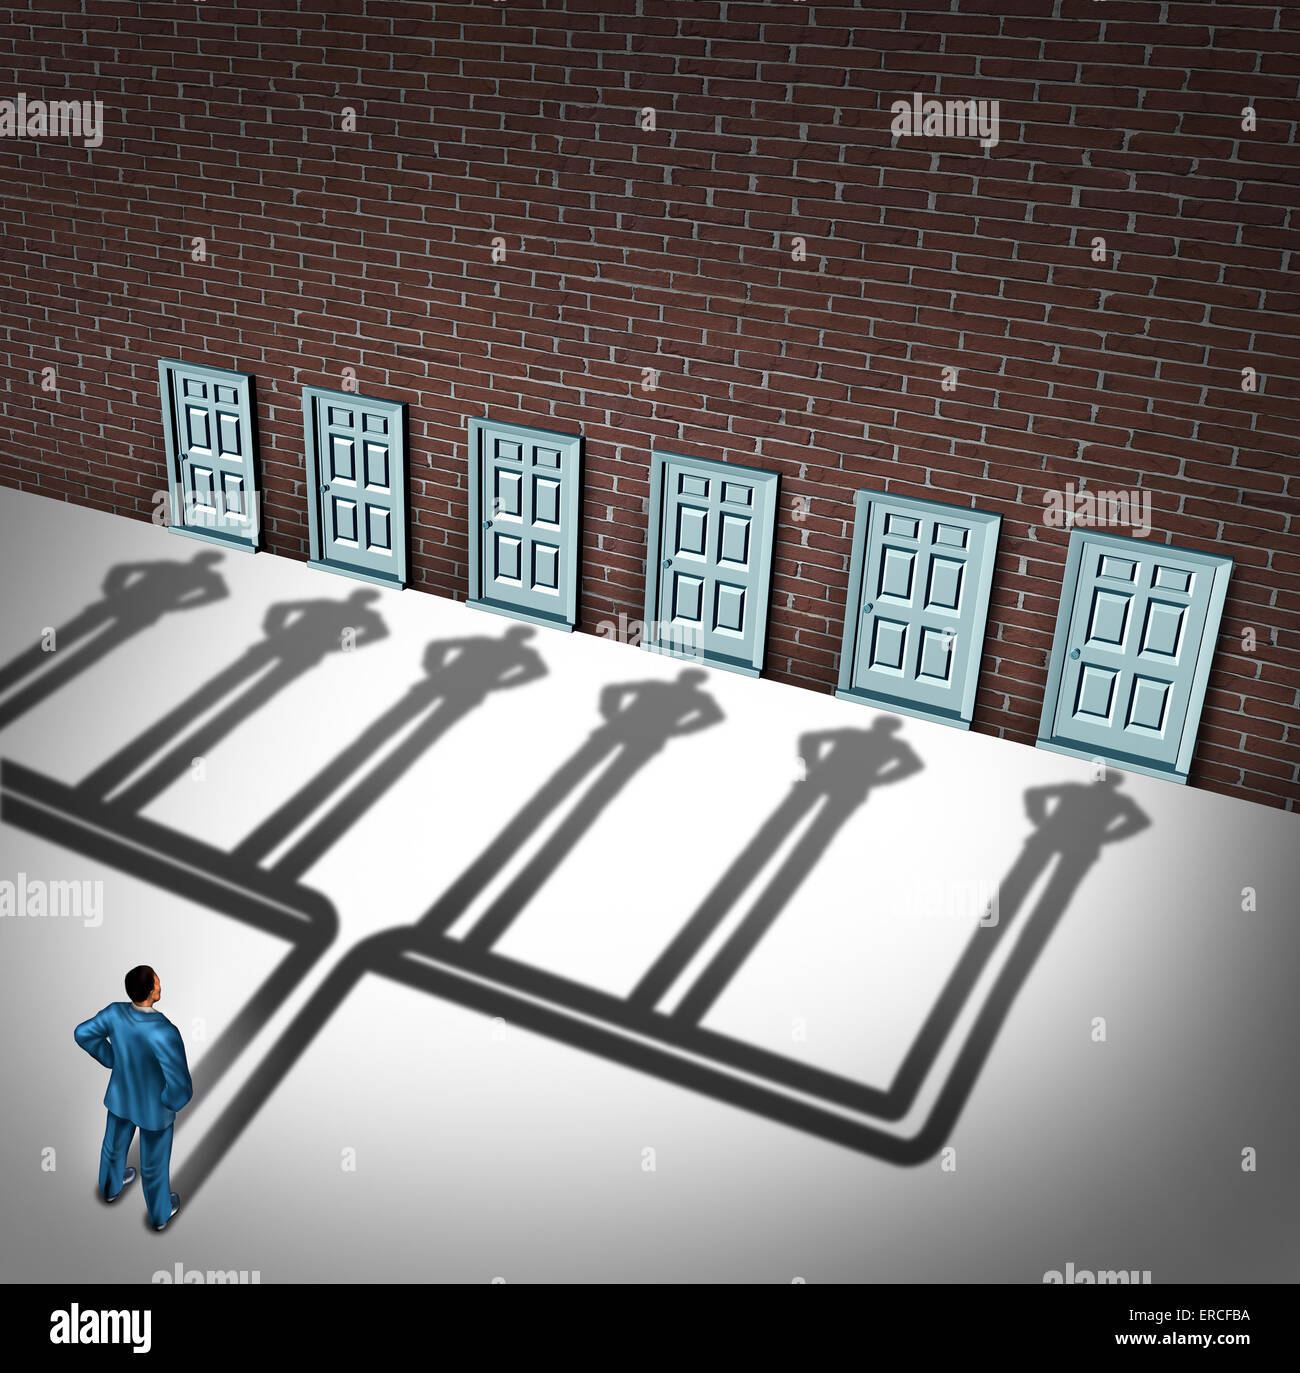 Businessman door choice concept as a person deciding to choose the right doorway with a cast shadow of multiple - Stock Image